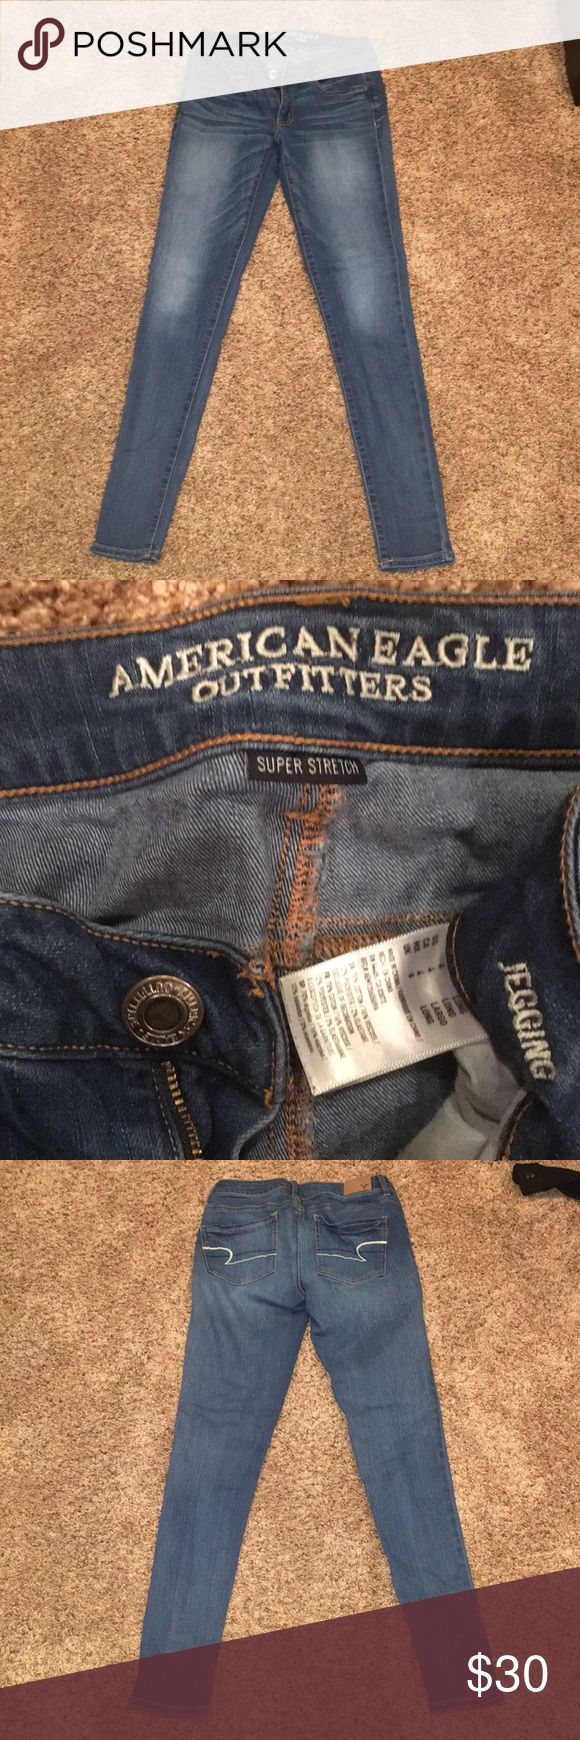 American Eagle super stretch jeans American Eagle jeans. Worn a few times but in good condition. Size 4 Long. Medium wash. Willing to negotiate price American Eagle Outfitters Jeans Skinny